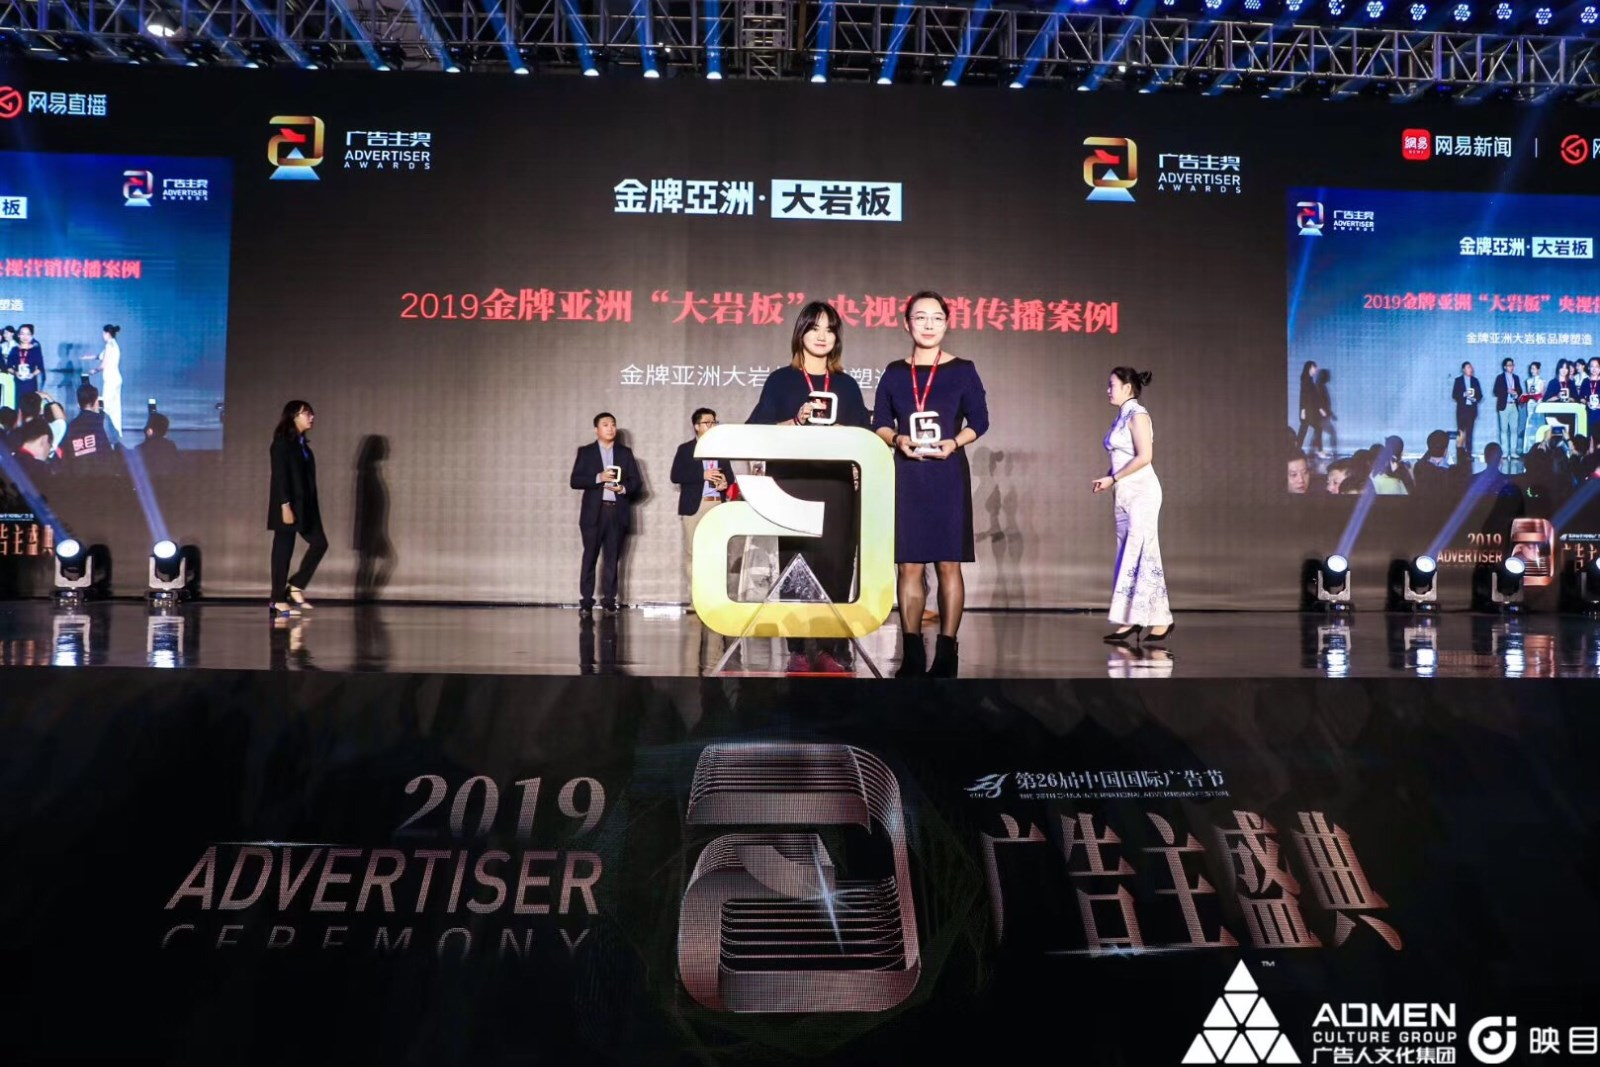 Gold Medal won the China International Advertising Festival